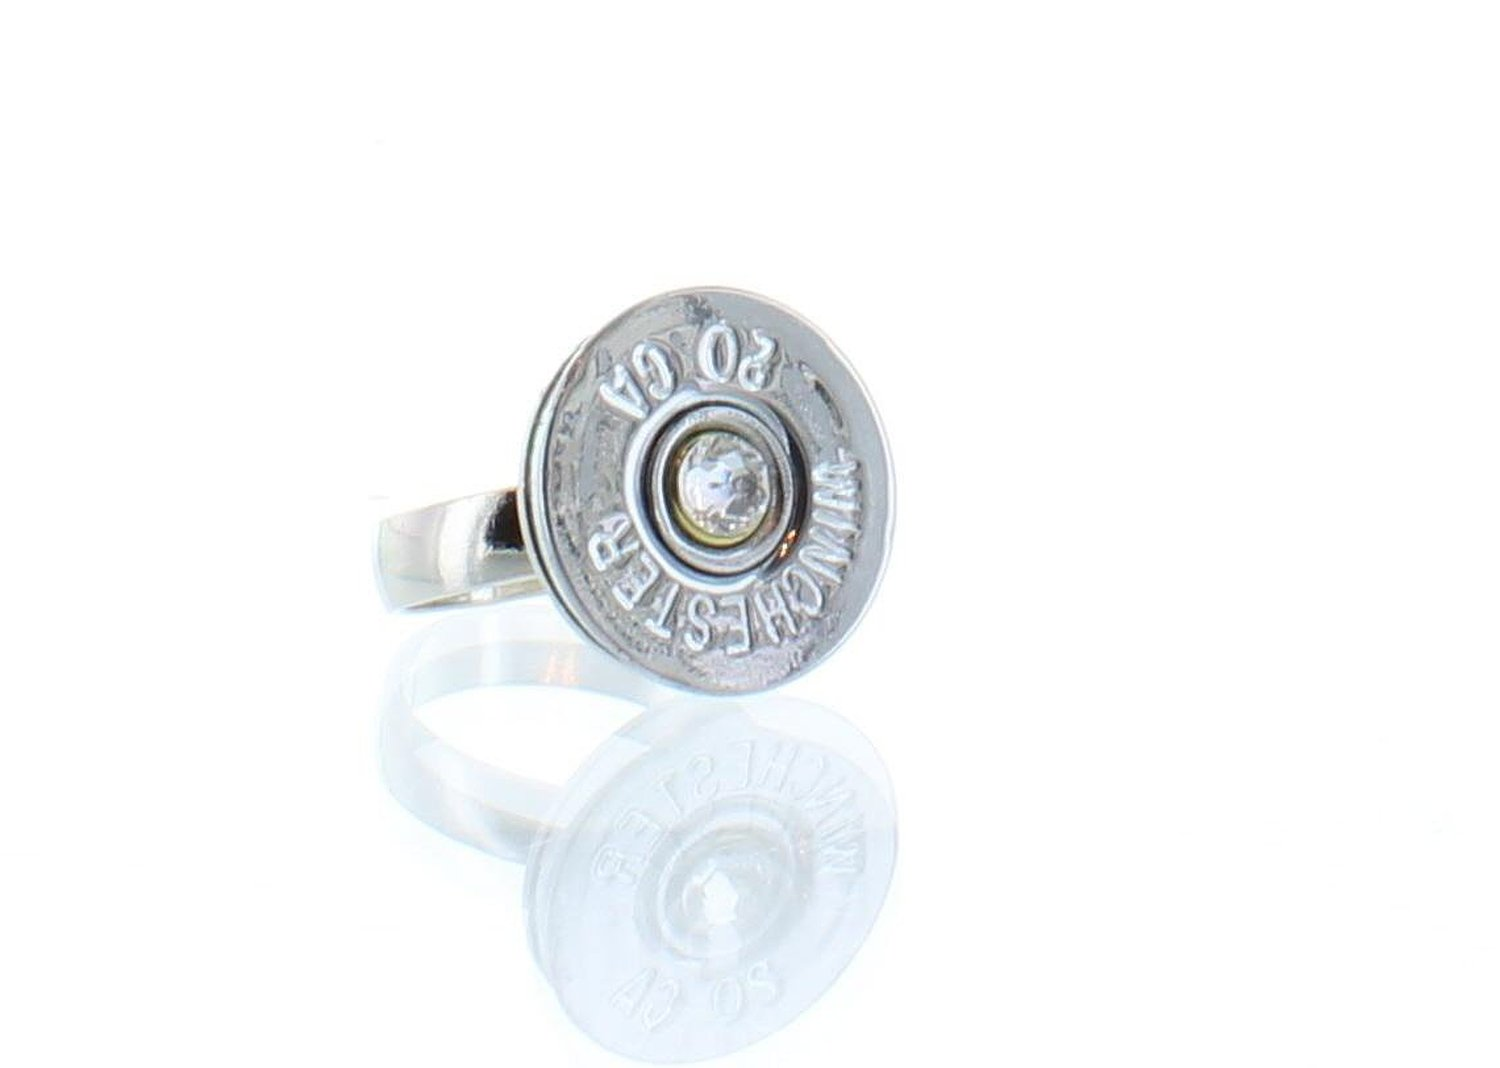 Amazon.com: womens or girls adjustable 20 gauge silver winchester ring with a clear crystal. made from recycled fired ammunition.: jewelry